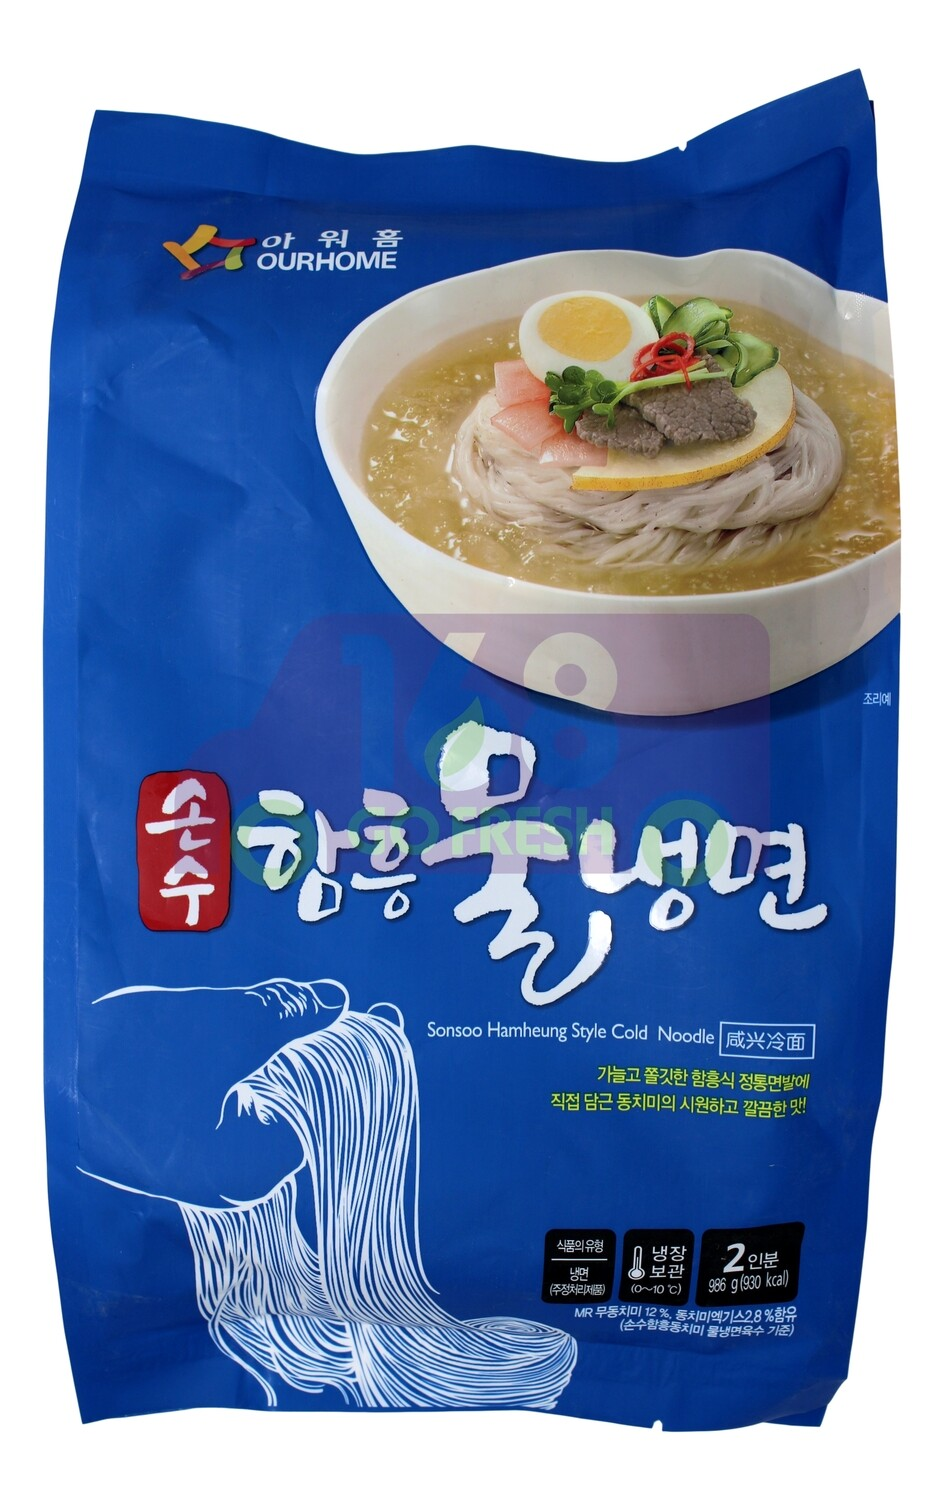 SONSOO HAMHEUNG STYLE COLD NOODLE 韩国OURHOME 咸兴冷面(986G)